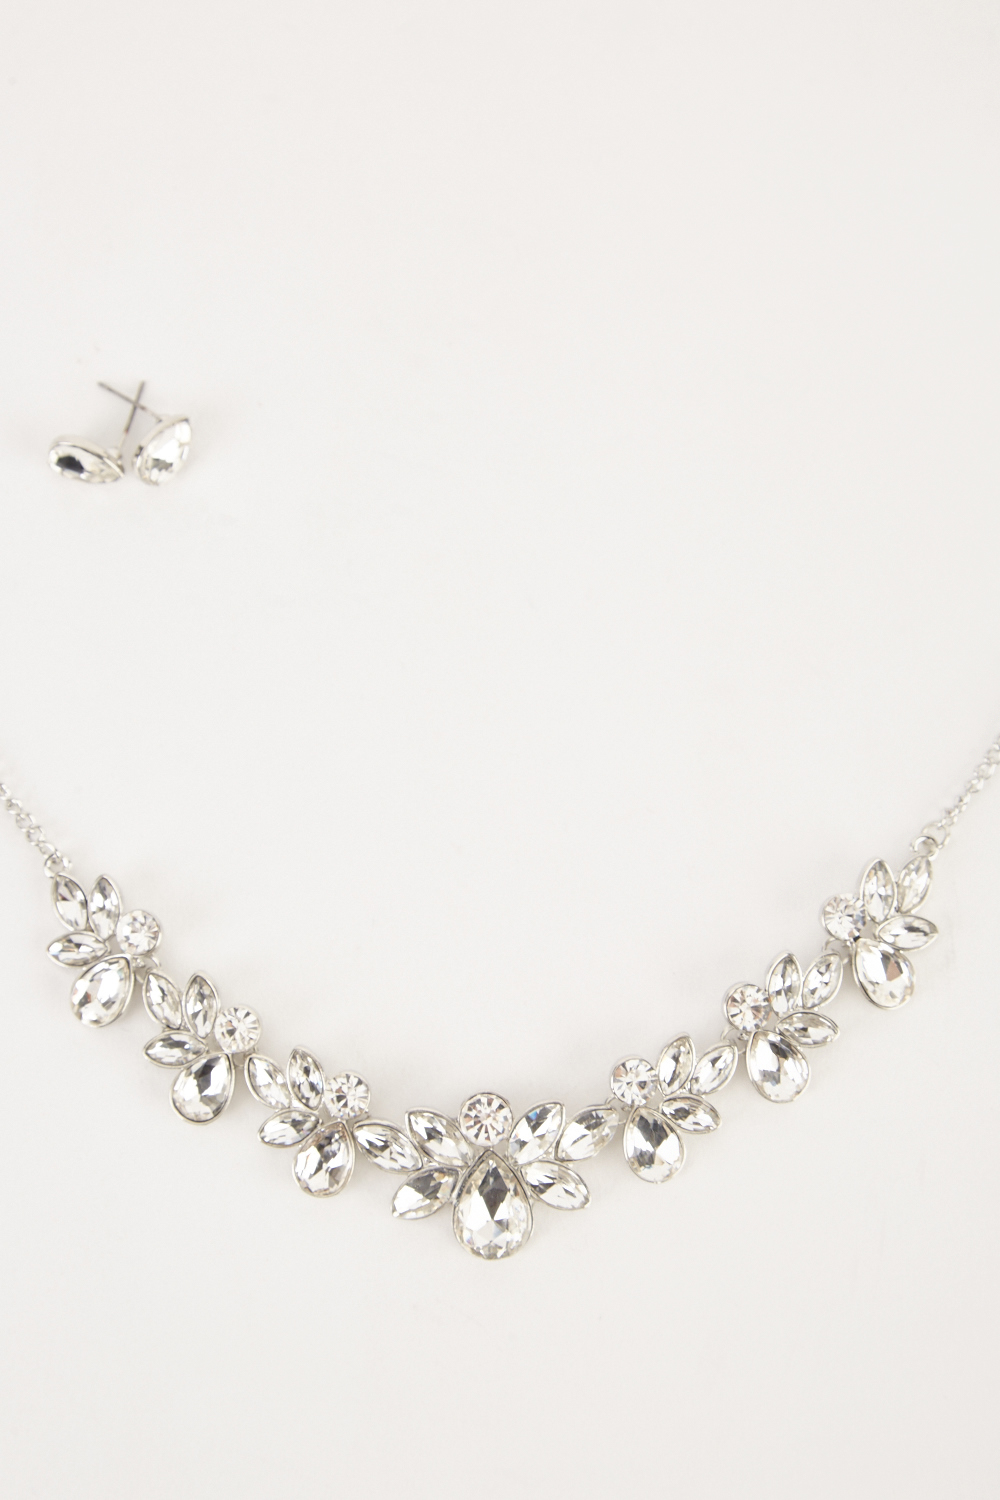 926e80fd3 Diamante Floral Necklace And Stud Earrings Set - Just £5